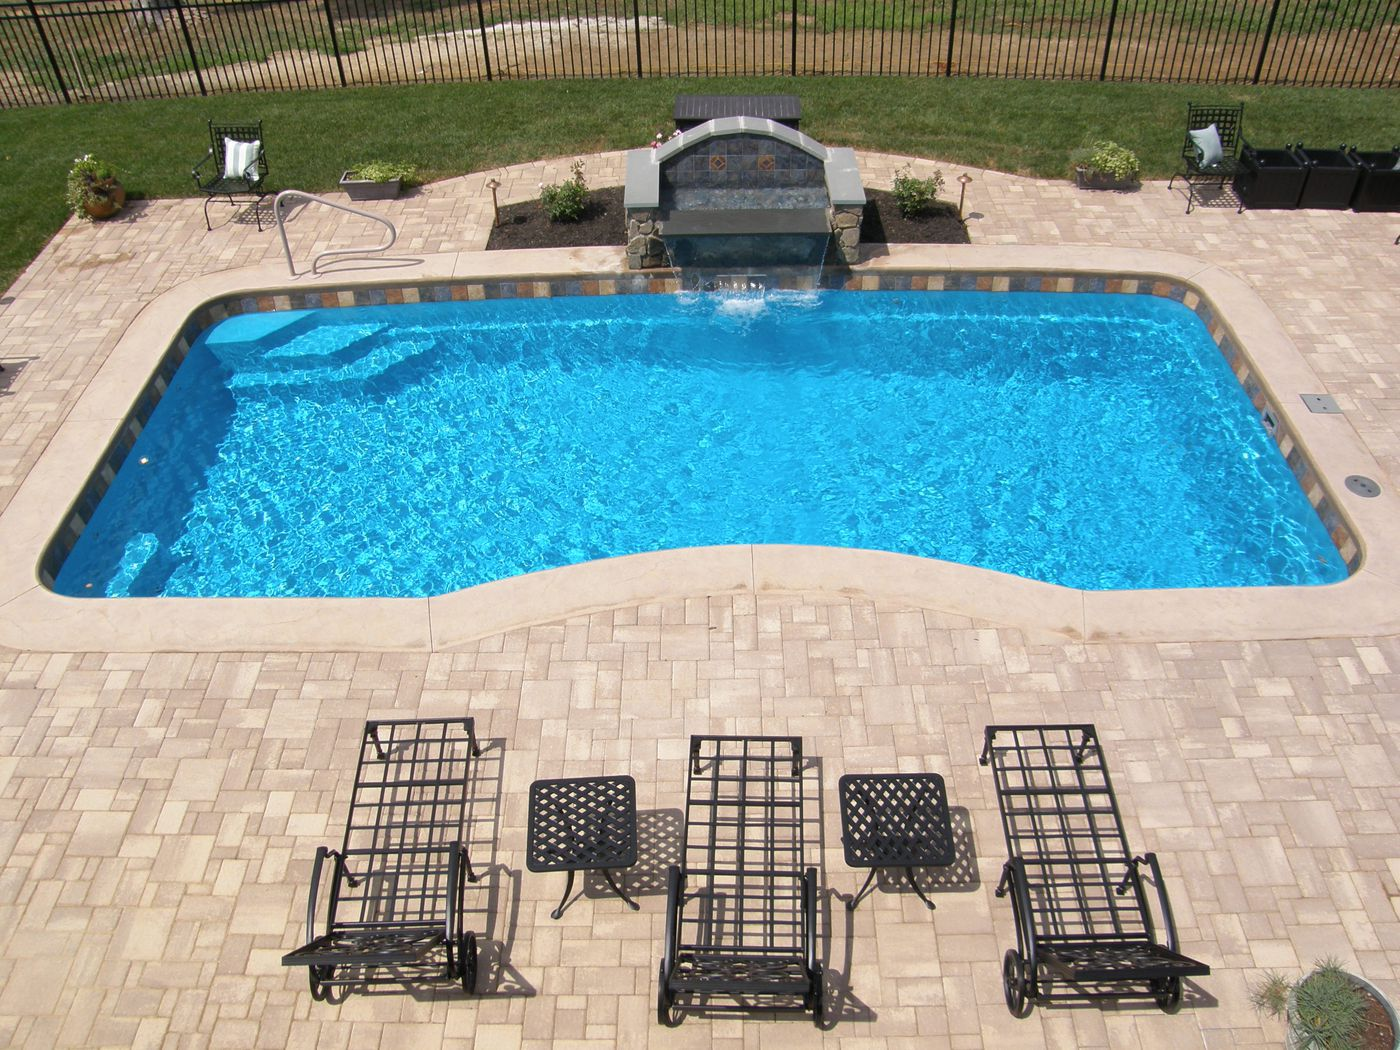 4 ThingsThat Will Dictate The Price Of Your Fiberglass Pool In 2014